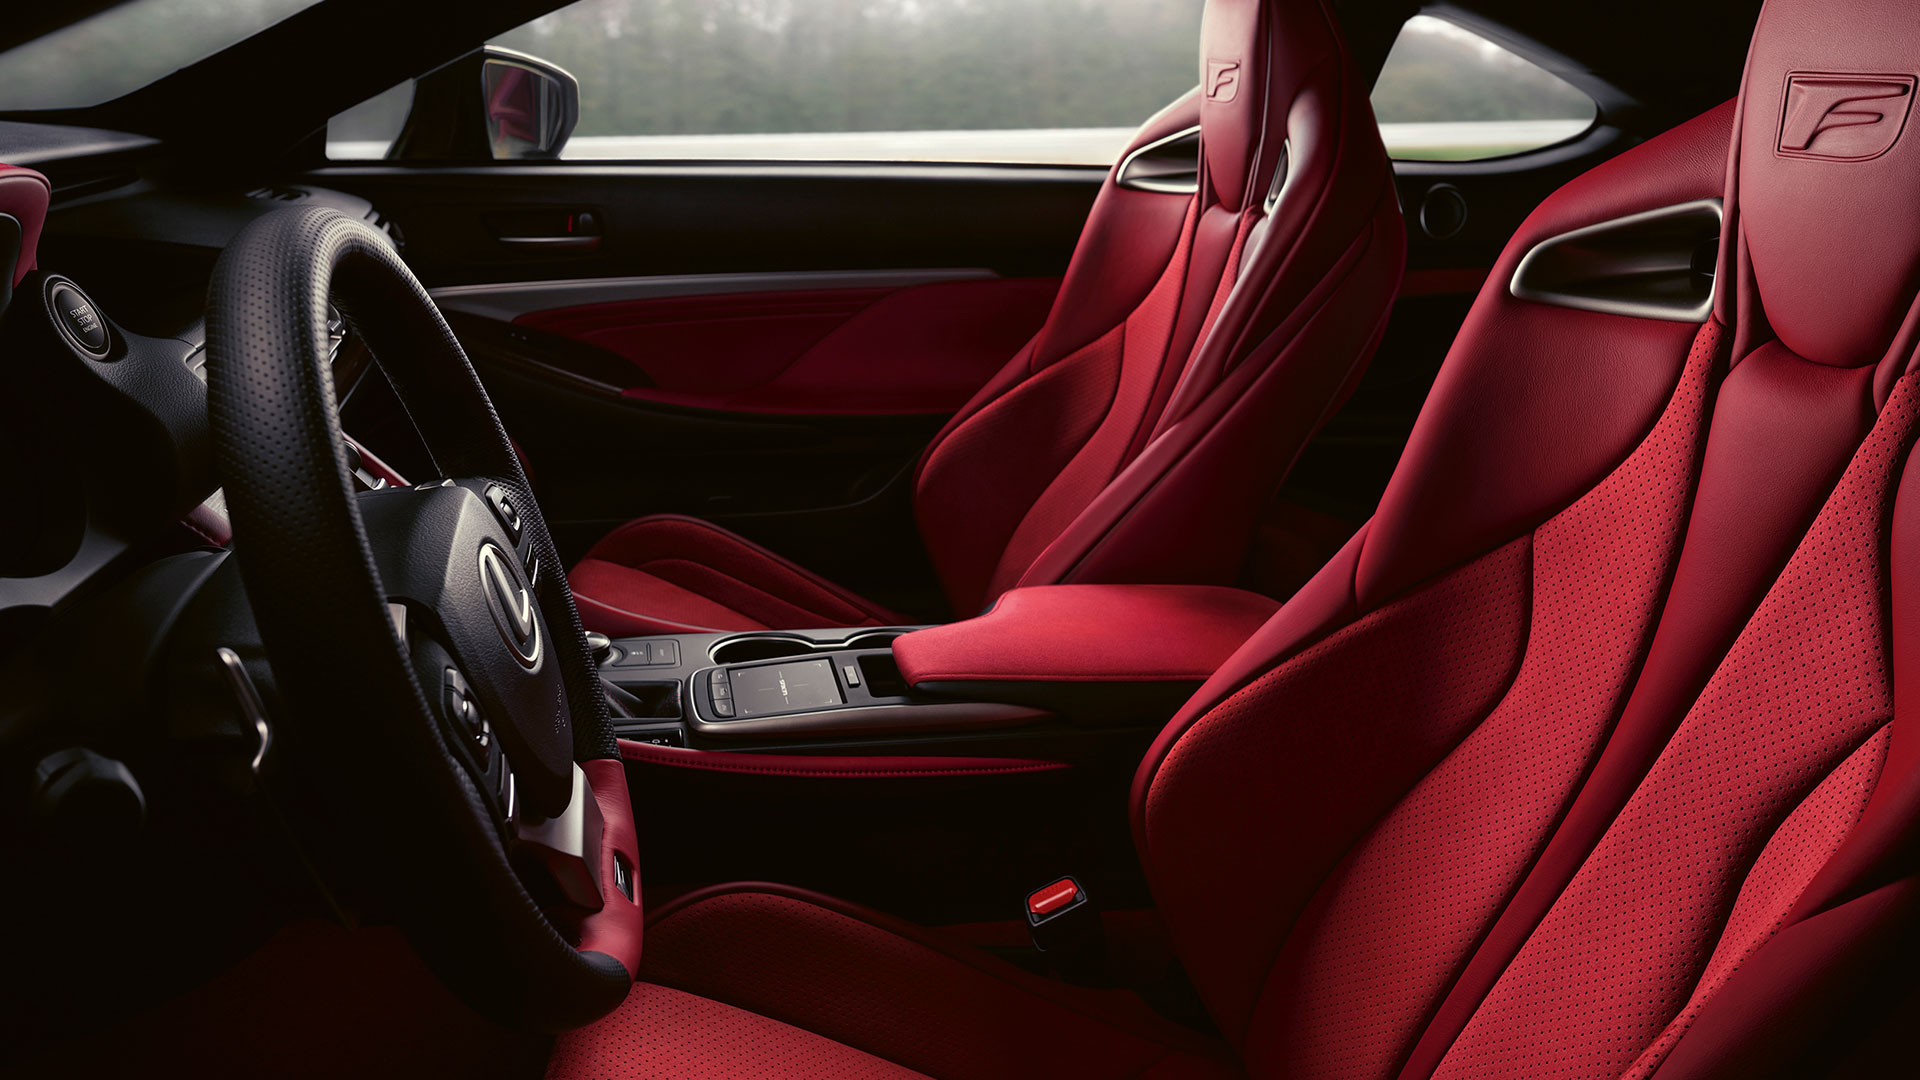 2019 lexus rc f gallery 017 interior